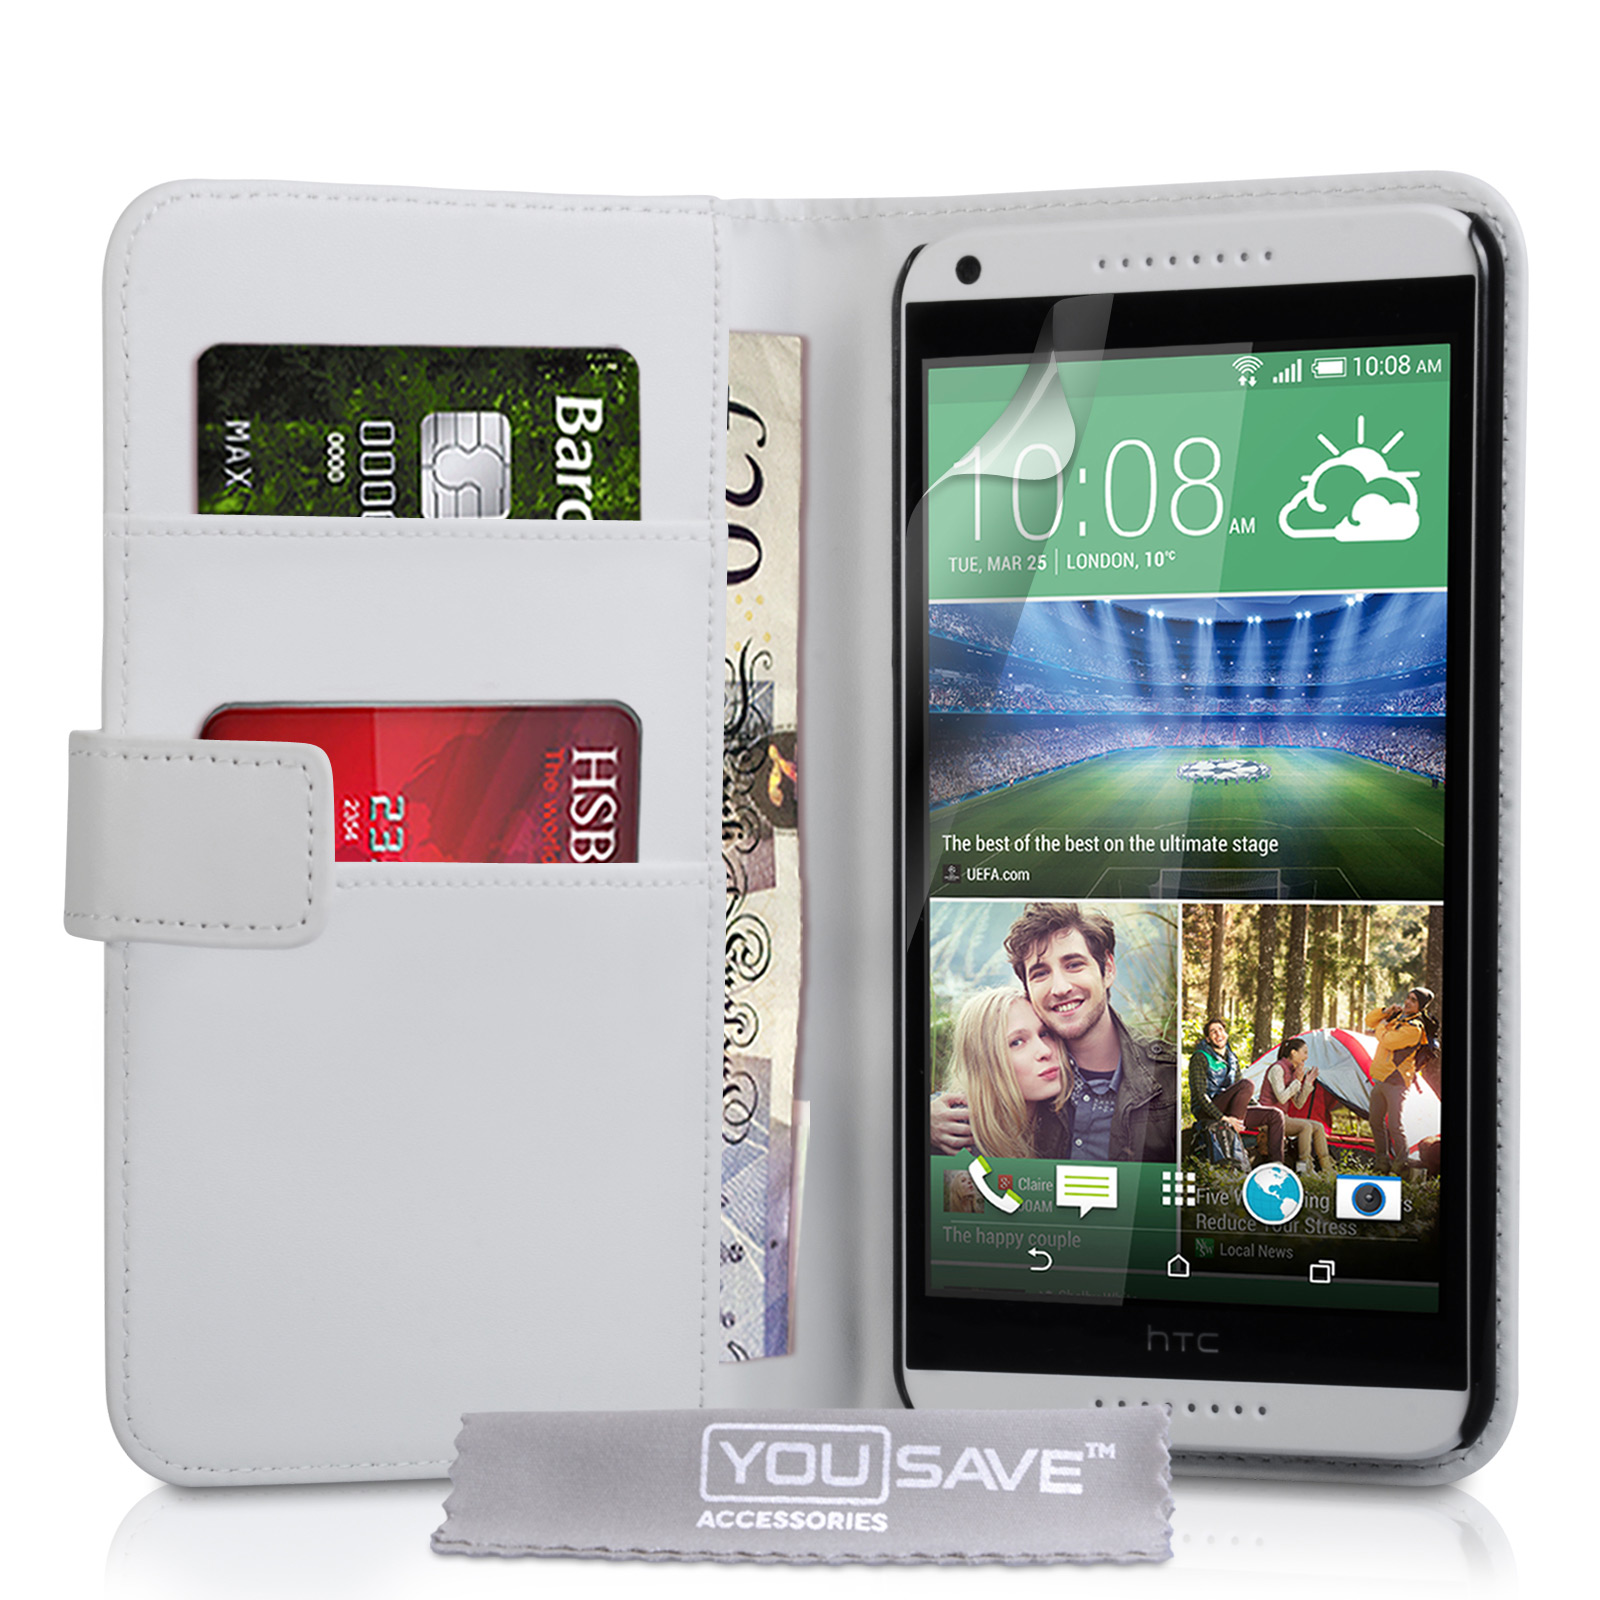 YouSave Accessories HTC Desire 816 Leather-Effect Wallet Case - White